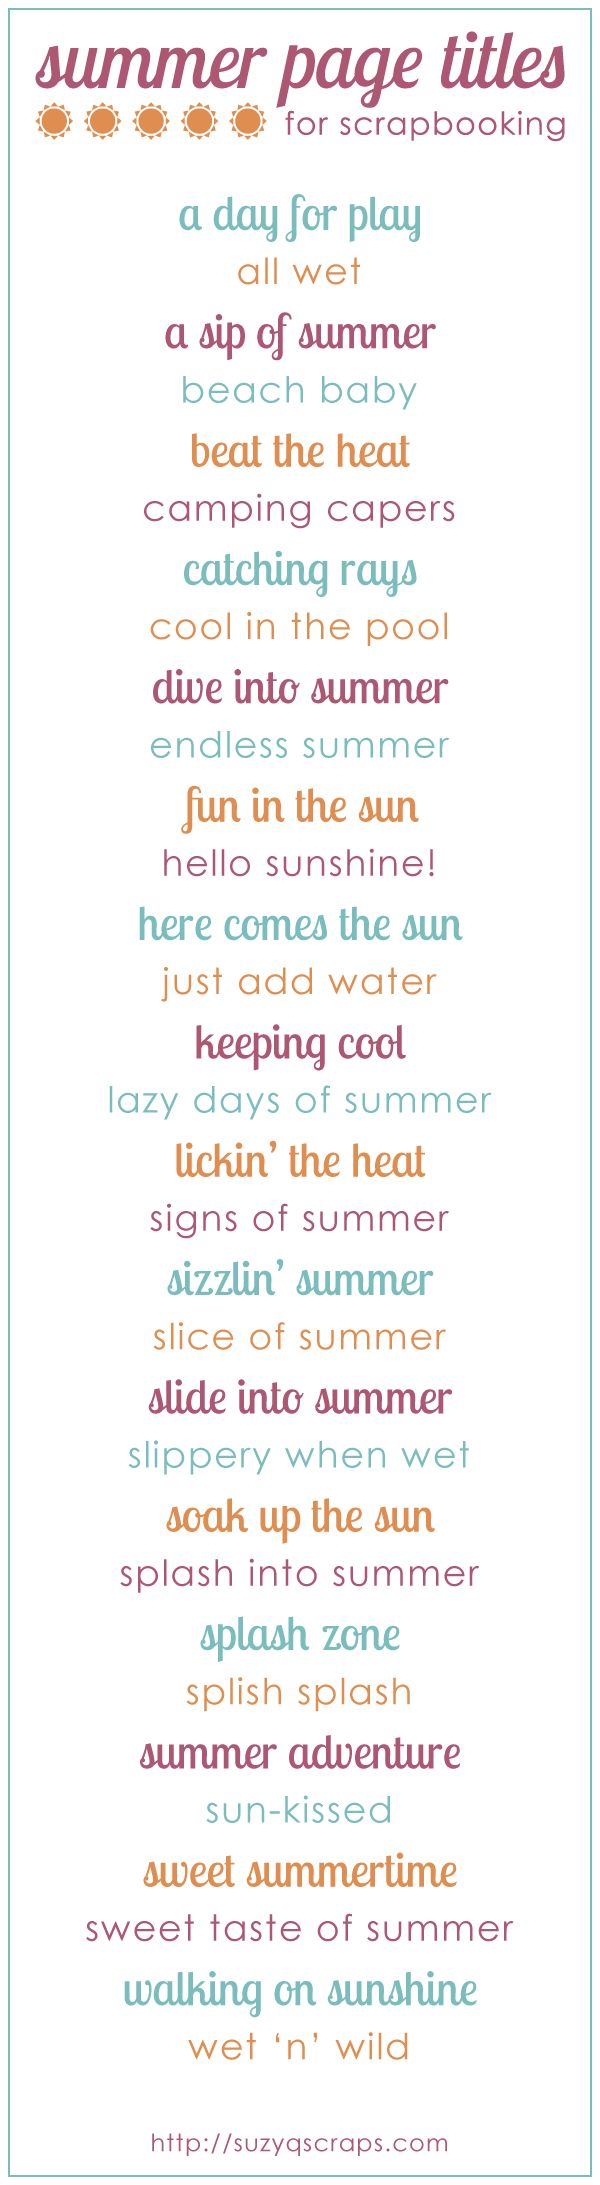 summer scrapbook idea | summer scrapbook page titles